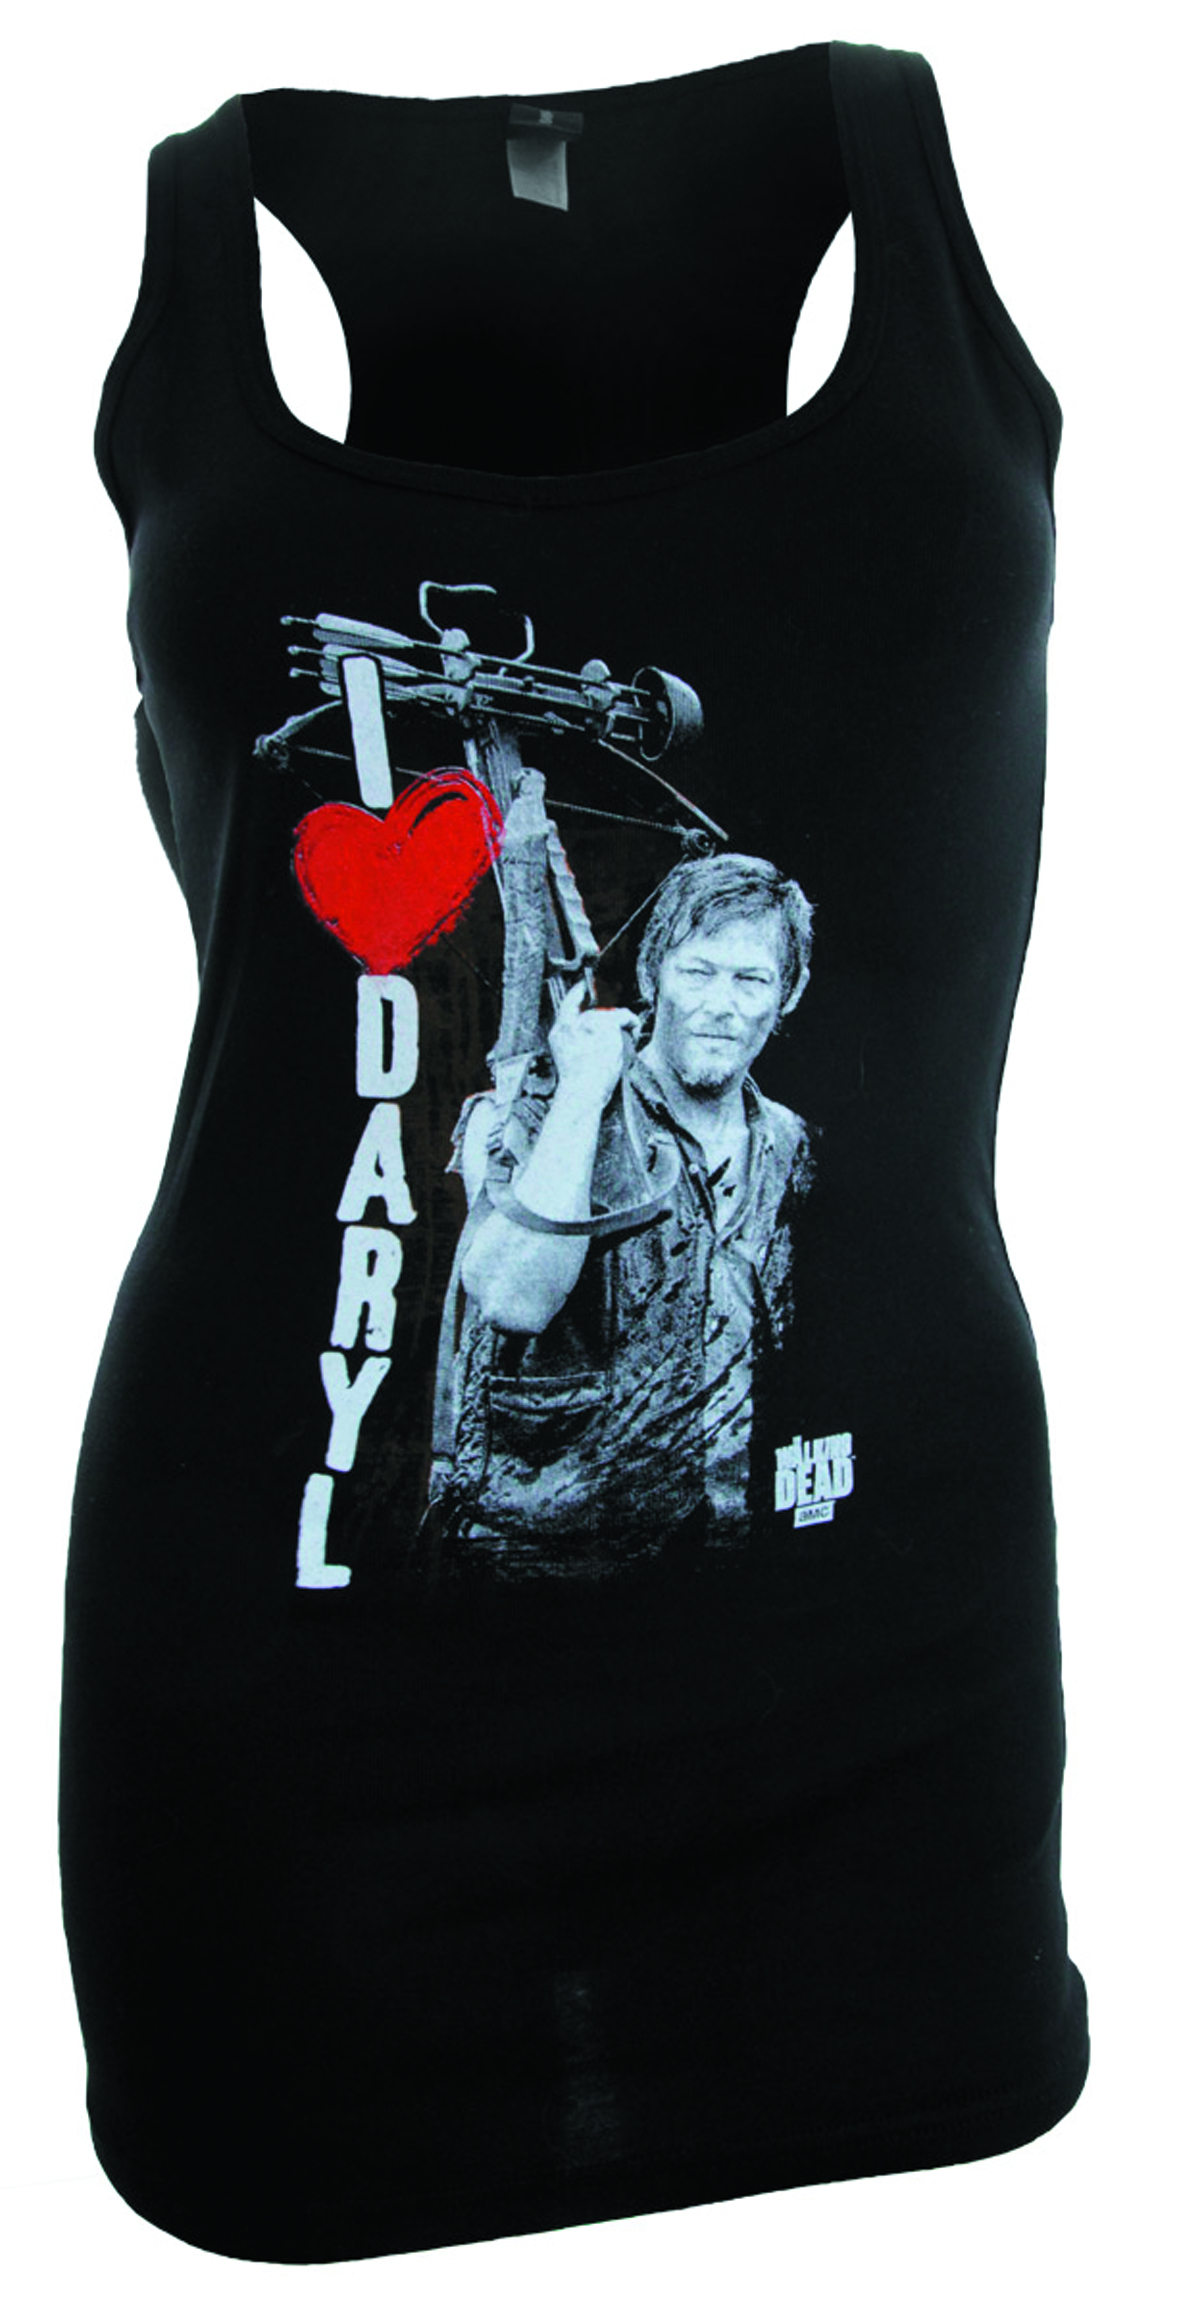 WALKING DEAD I HEART DARYL TANK DRESS T/S MED